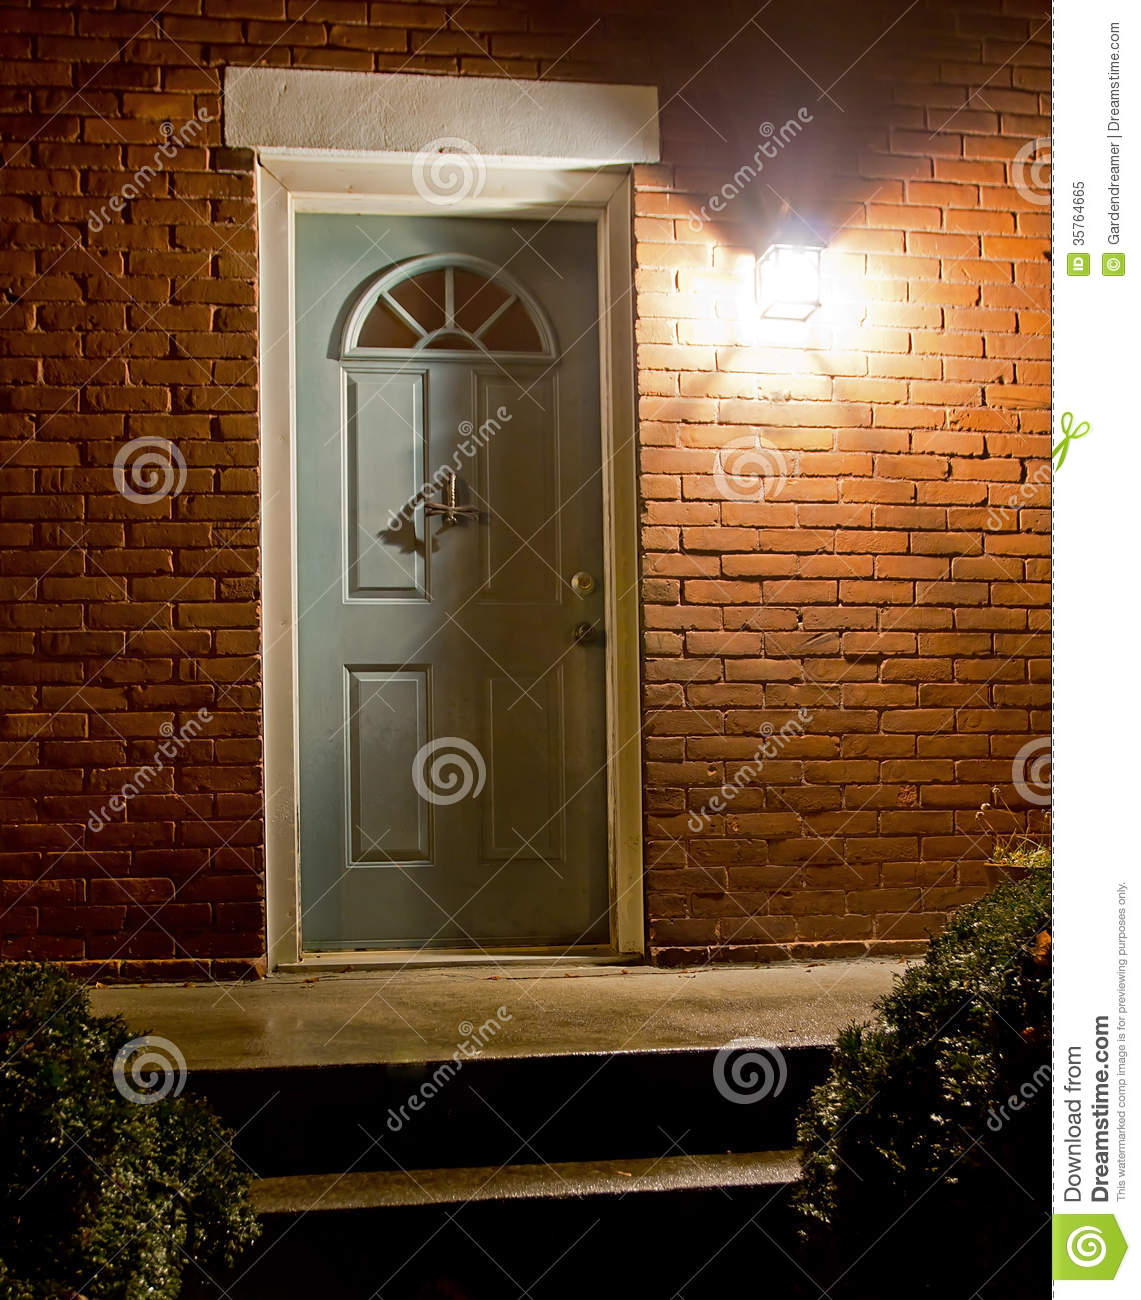 Home Entrance At Night Royalty Free Stock Photo Image